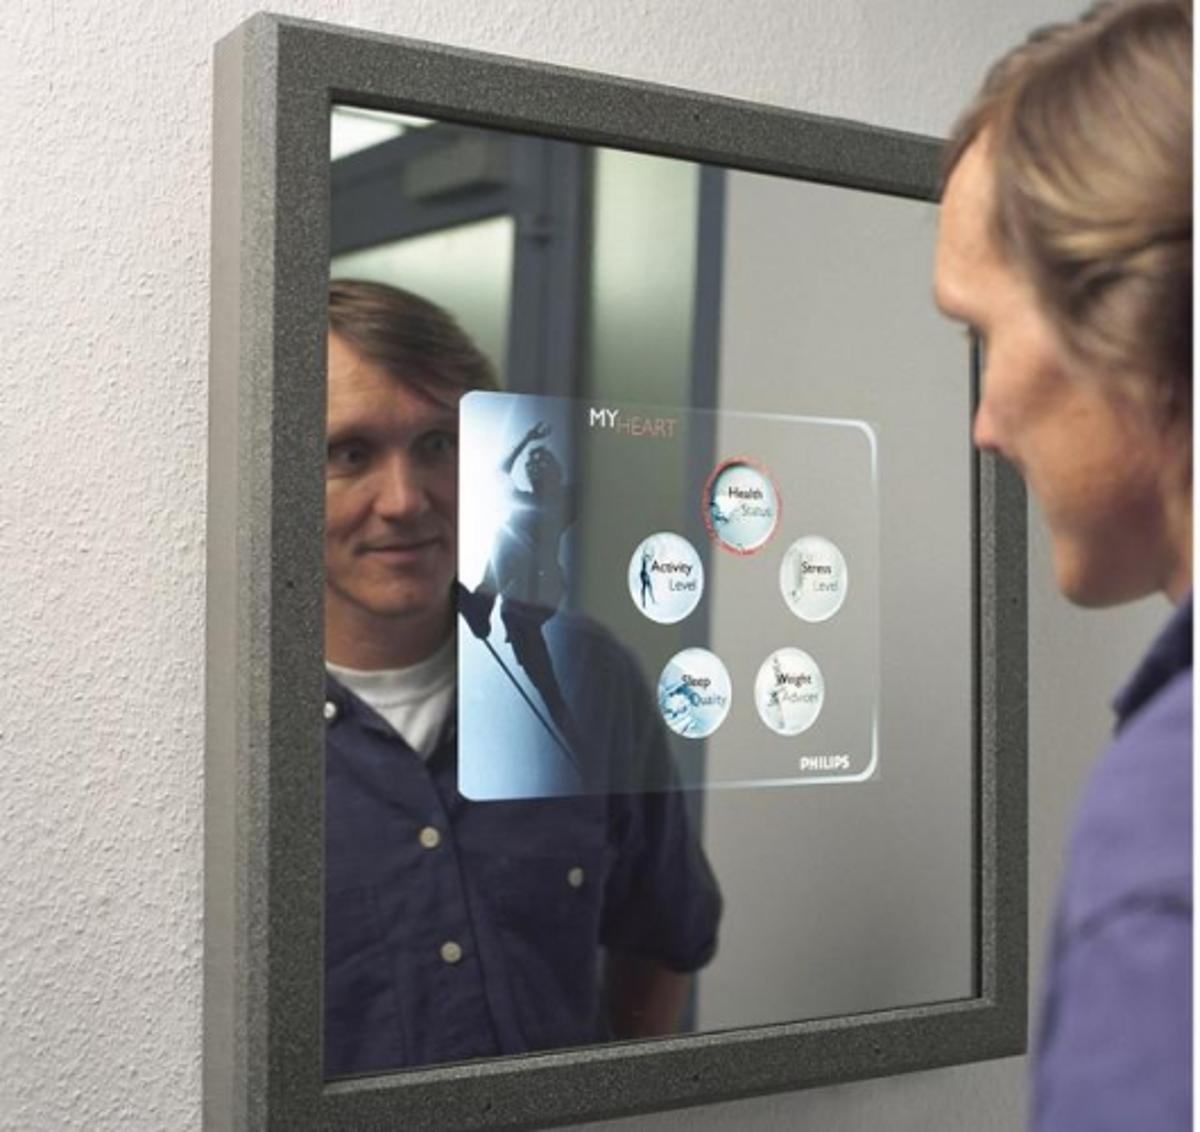 Displays for user interaction can be integrated into every-day appliances like a bathroom mirror.